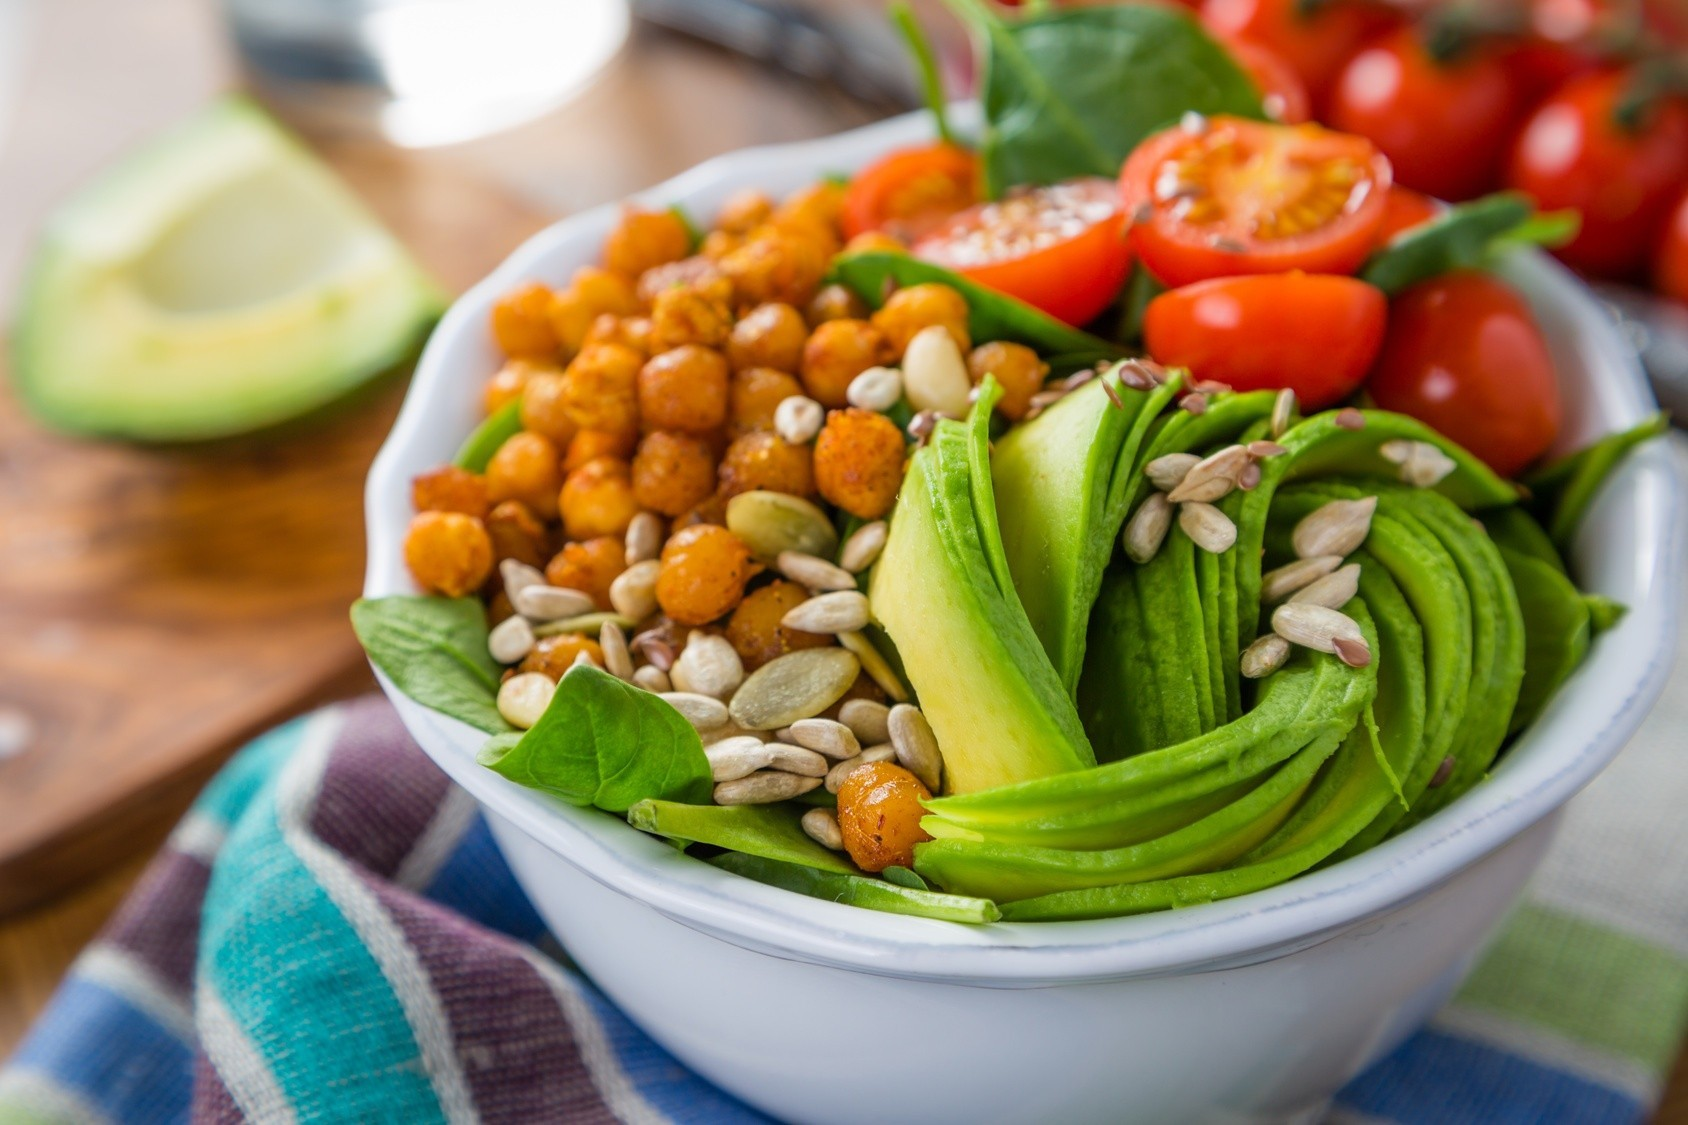 How to Build Your Own Nutritious Buddha Bowl